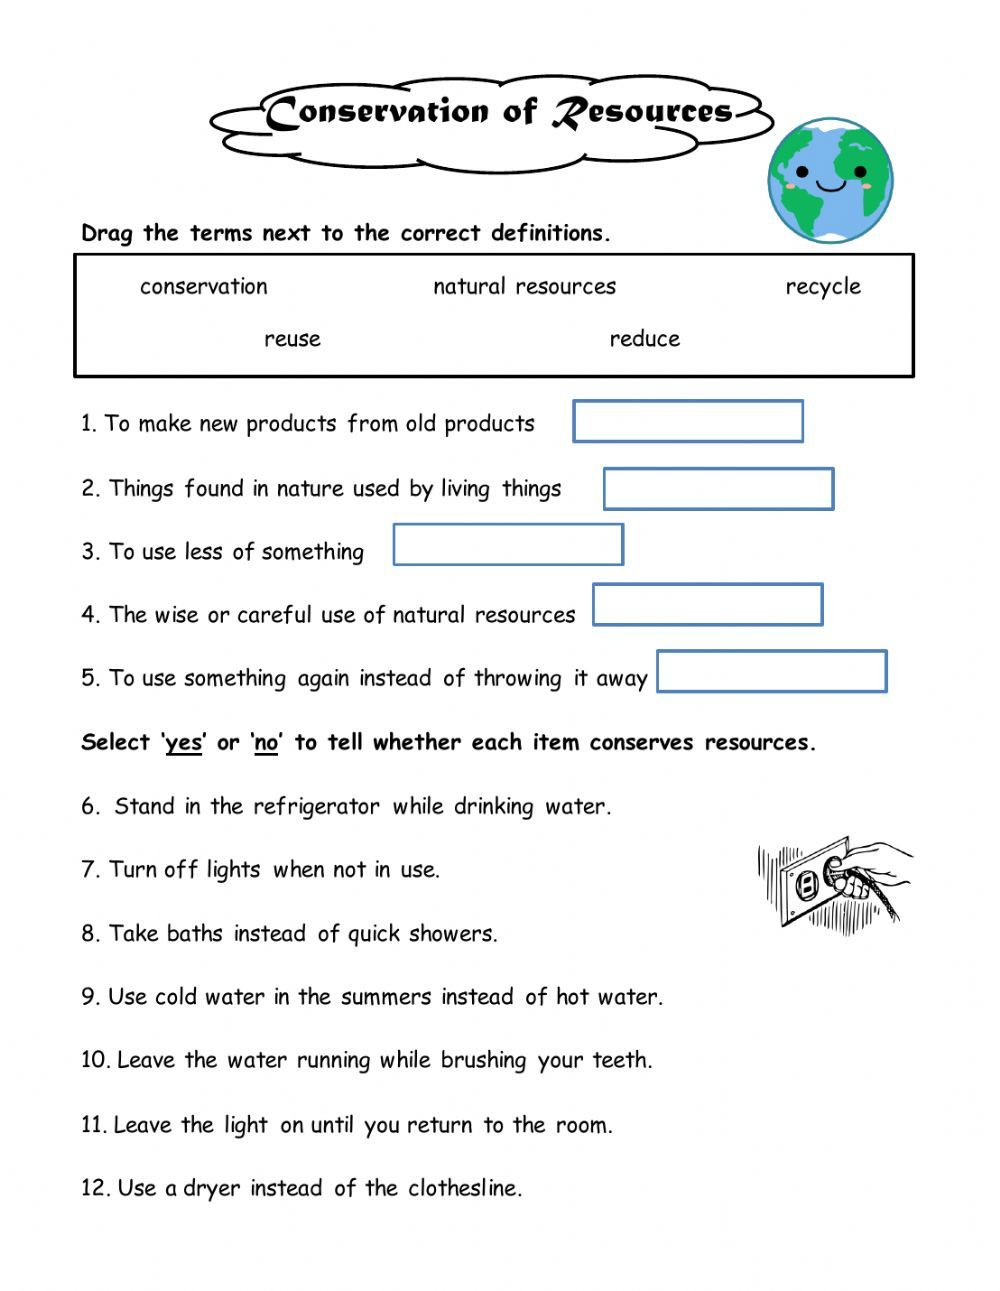 Ways To Conserve Online Worksheet For Grade 4 You Can Do The Exercises Online Or Kindergarten Worksheets Kindergarten Worksheets Printable Worksheets For Kids